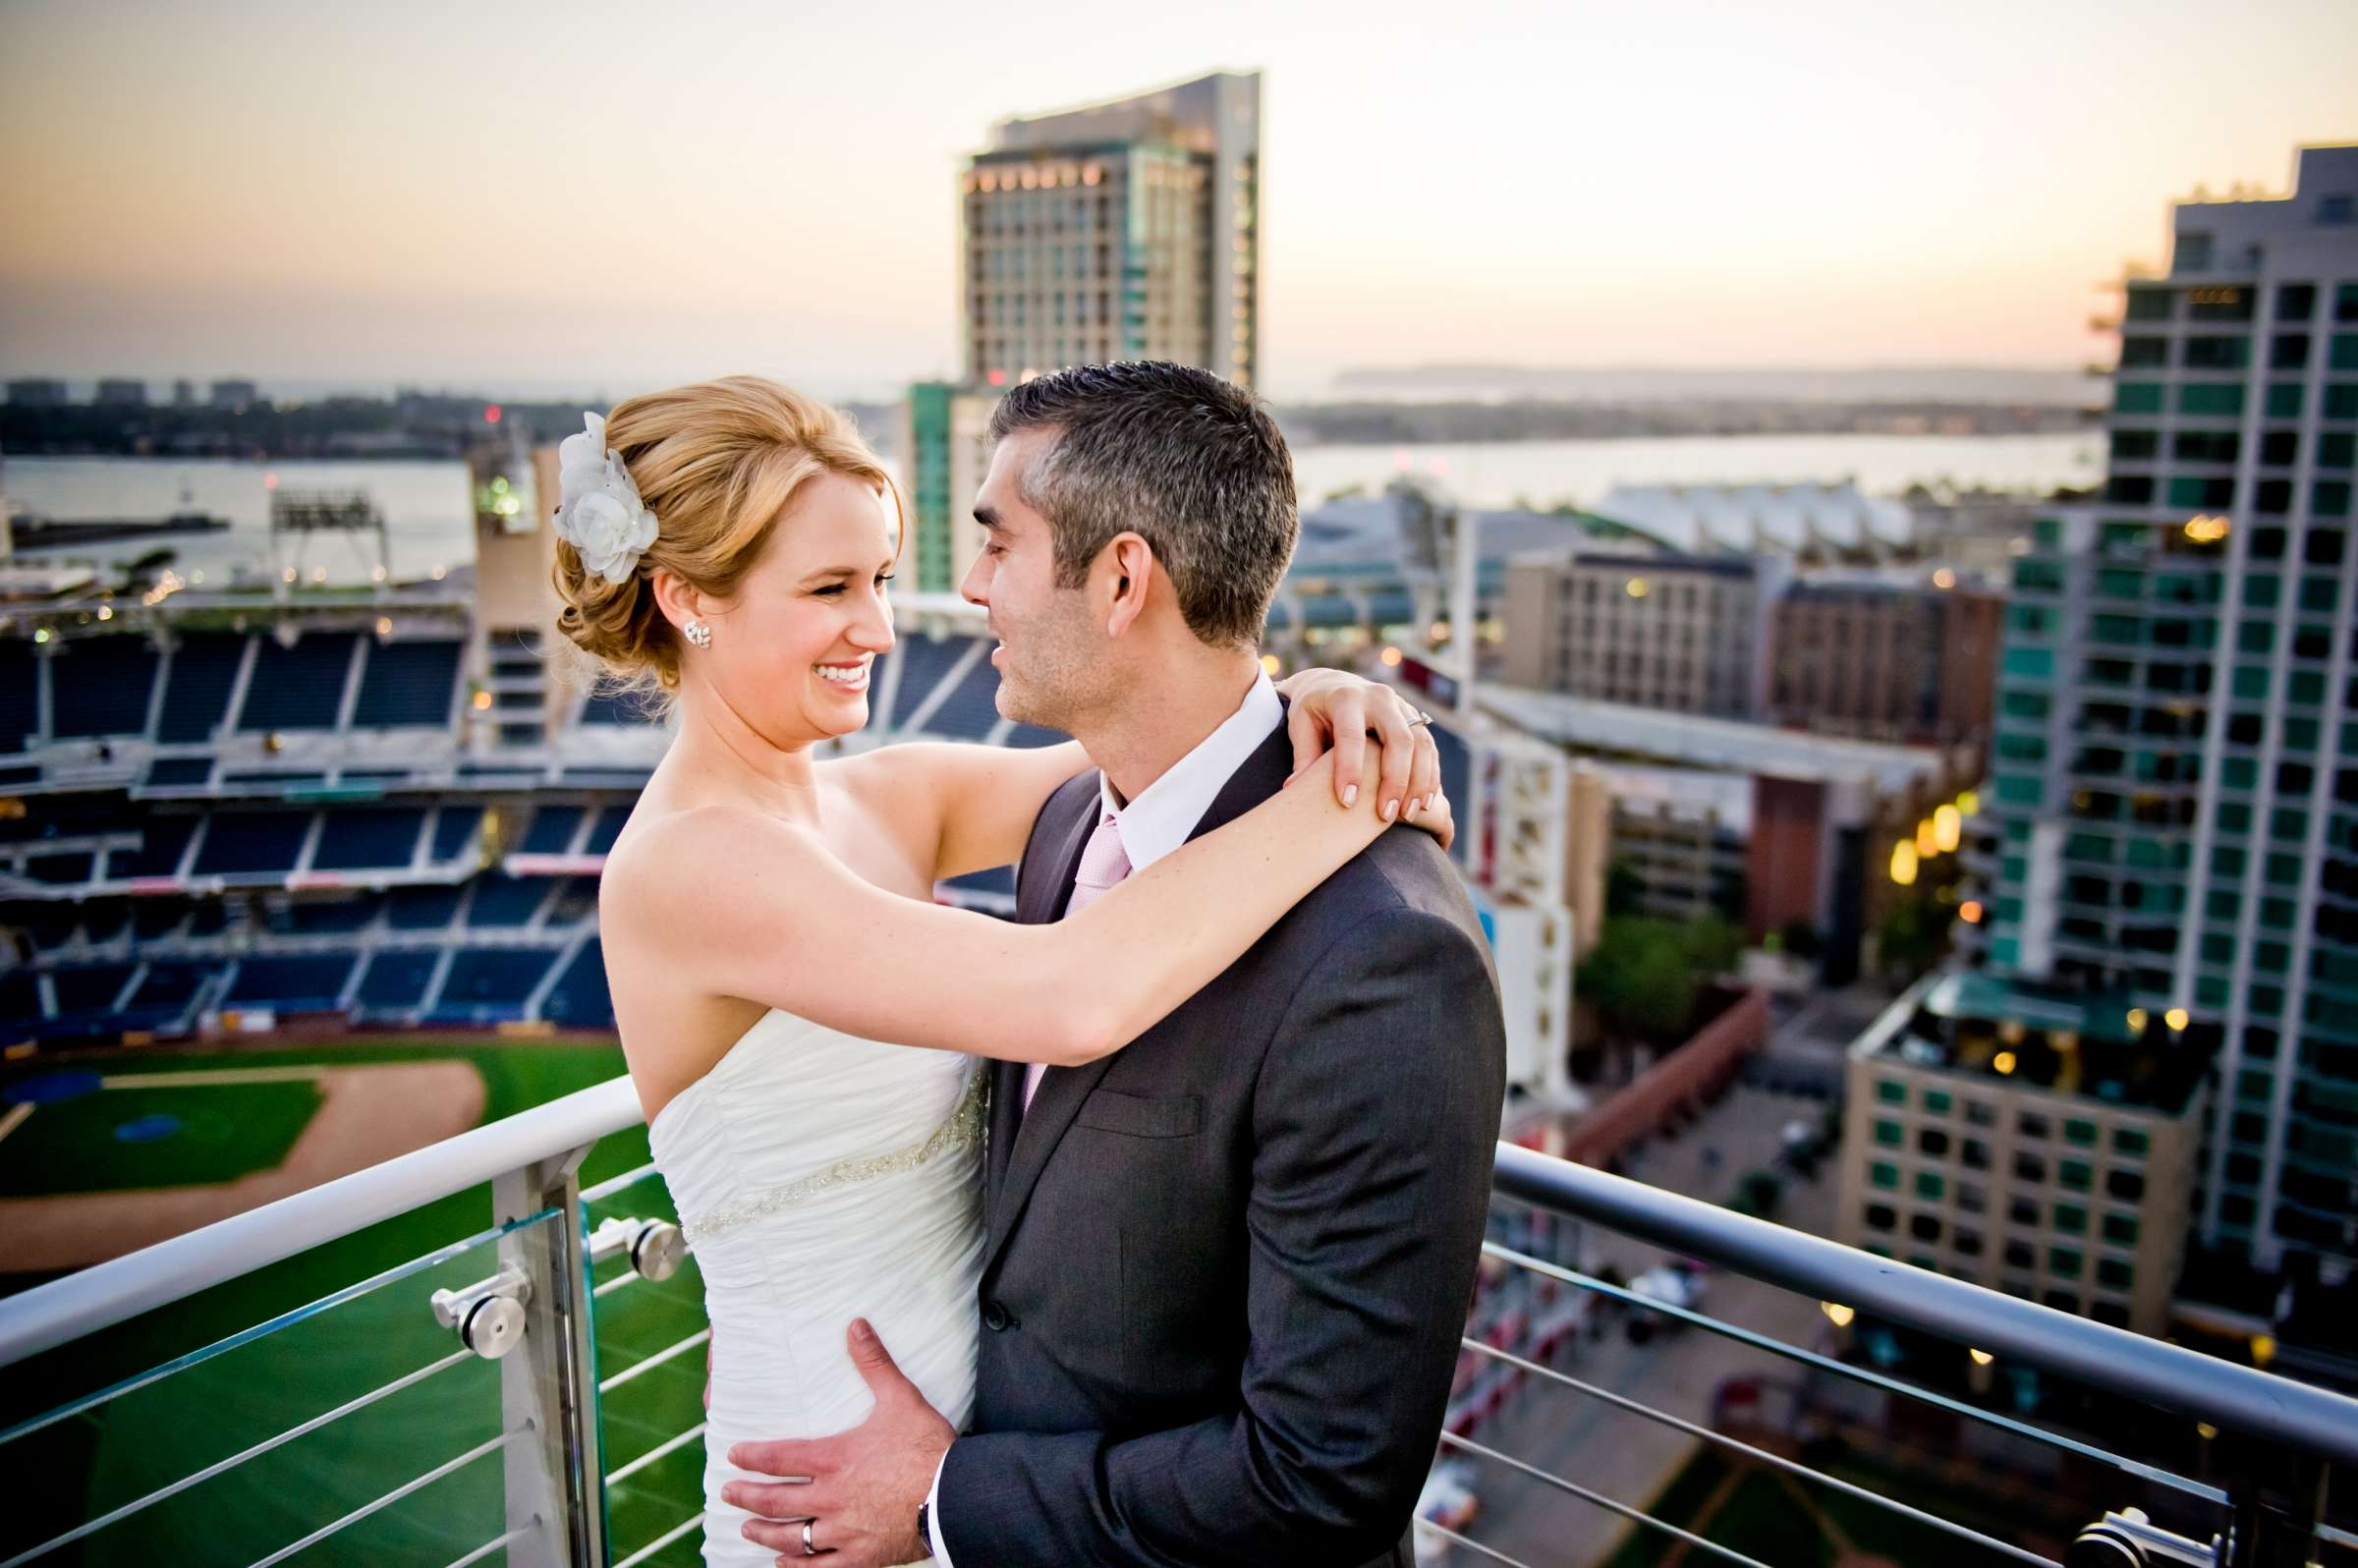 Urban Downtown at Ultimate Skybox Wedding, Chelsea and Frank Wedding Photo #15 by True Photography